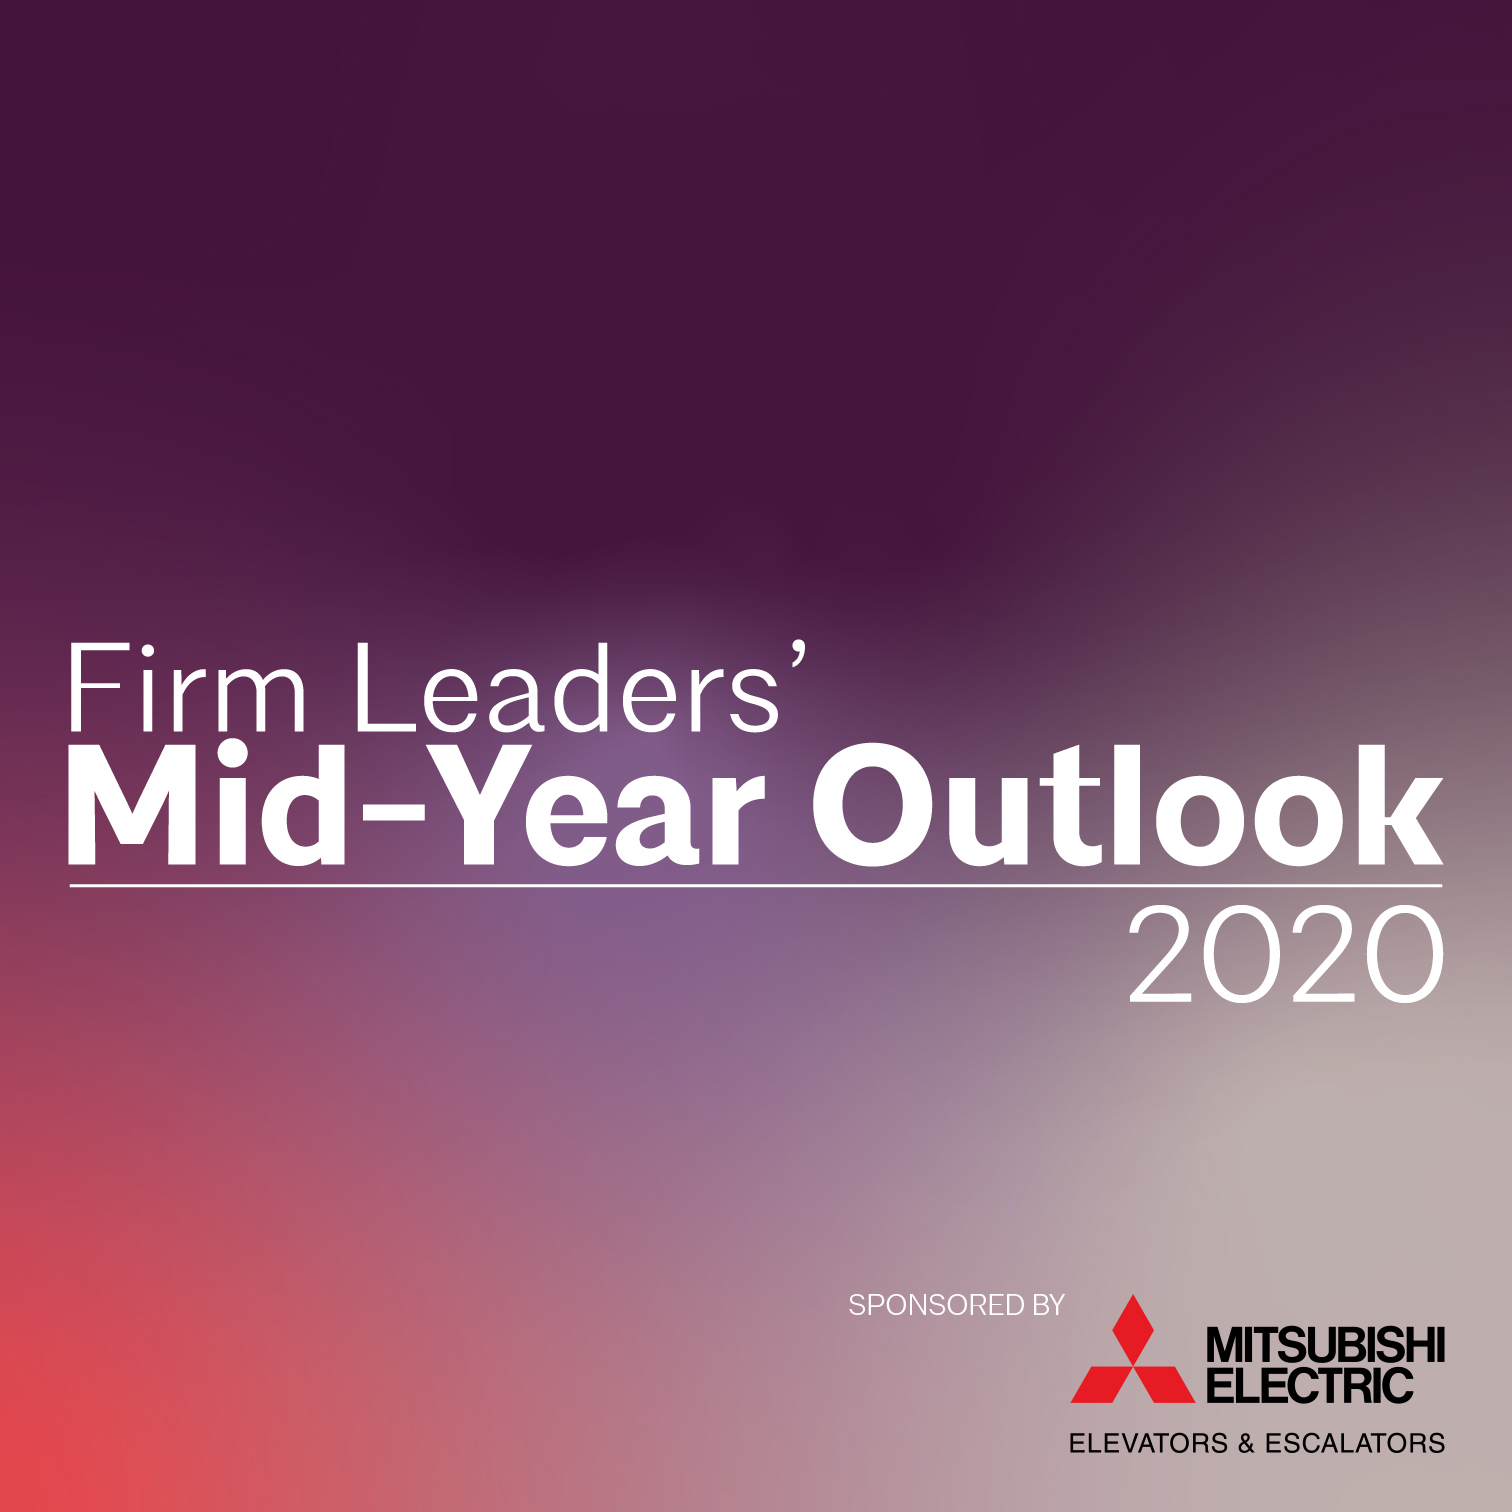 Firm Leaders' Mid-Year Outlook for 2020